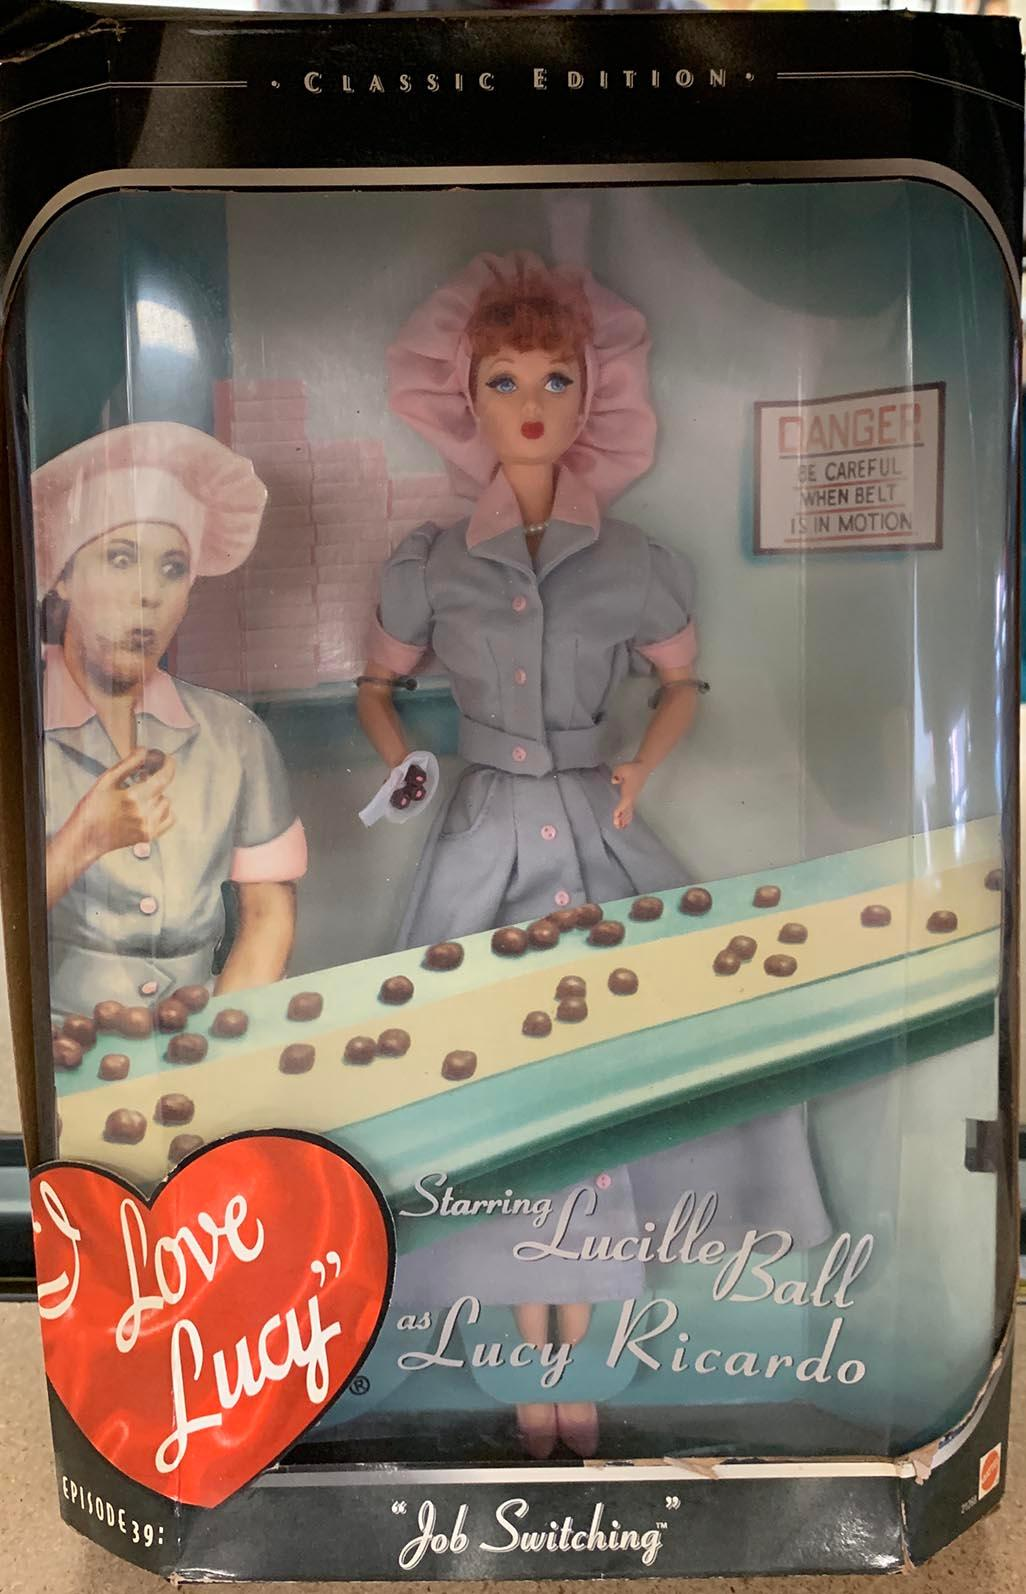 Mattel Classic Edition I Love Lucy; Lucy Ricardo Barbie Doll new in box.